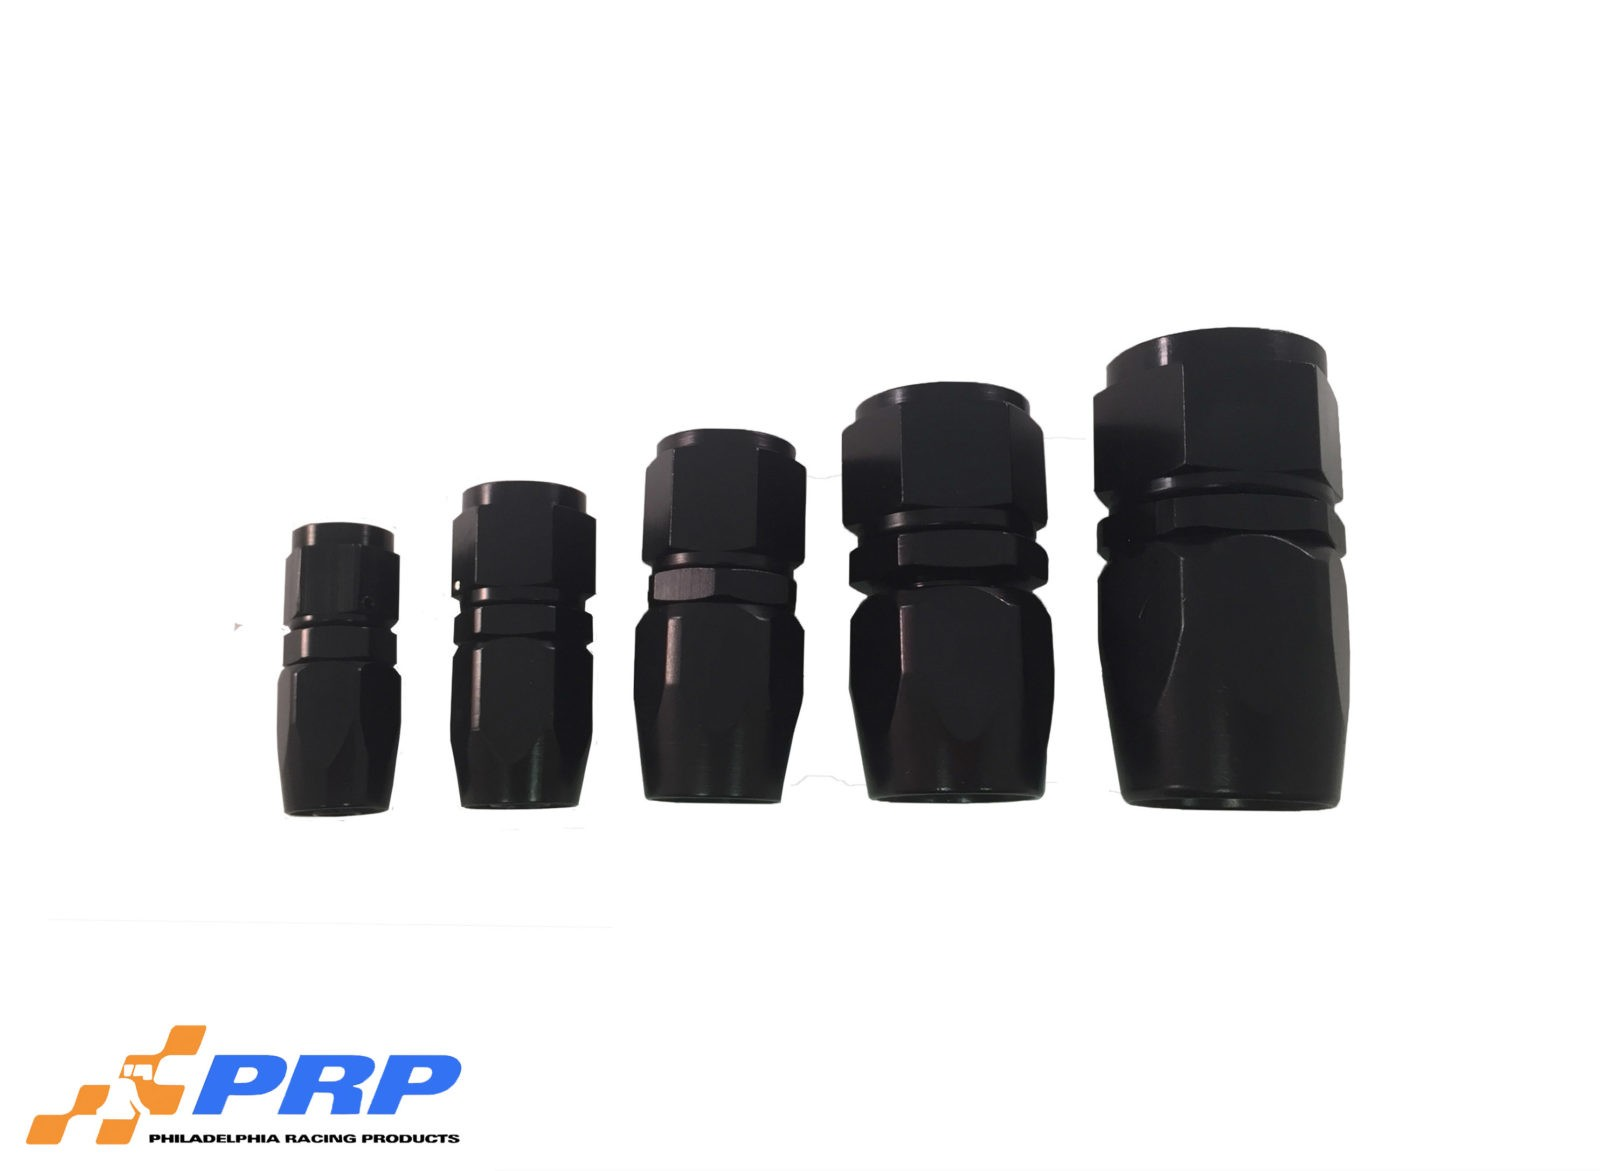 Black Straight Swivel Hose Ends made by PRP Racing Products